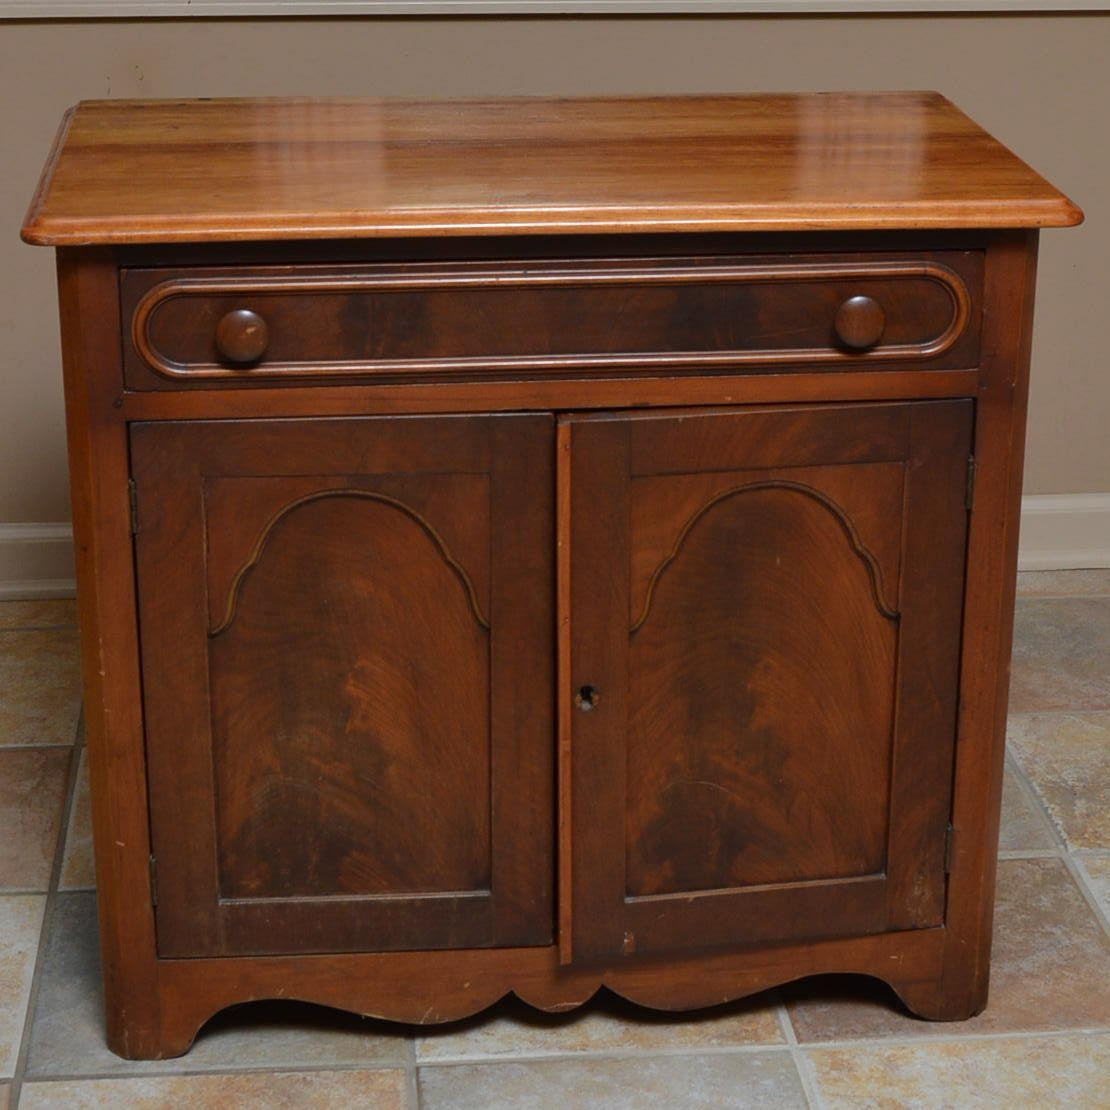 Antique Cherry And Mahogany Veneer Cabinet With Divided. Designing A New Kitchen. Kitchen Design Latest. European Kitchen Designs. Expensive Kitchen Designs. Kitchen Design Games. Online Kitchen Design. Restaurant Open Kitchen Design. Cabinets For Small Kitchens Designs